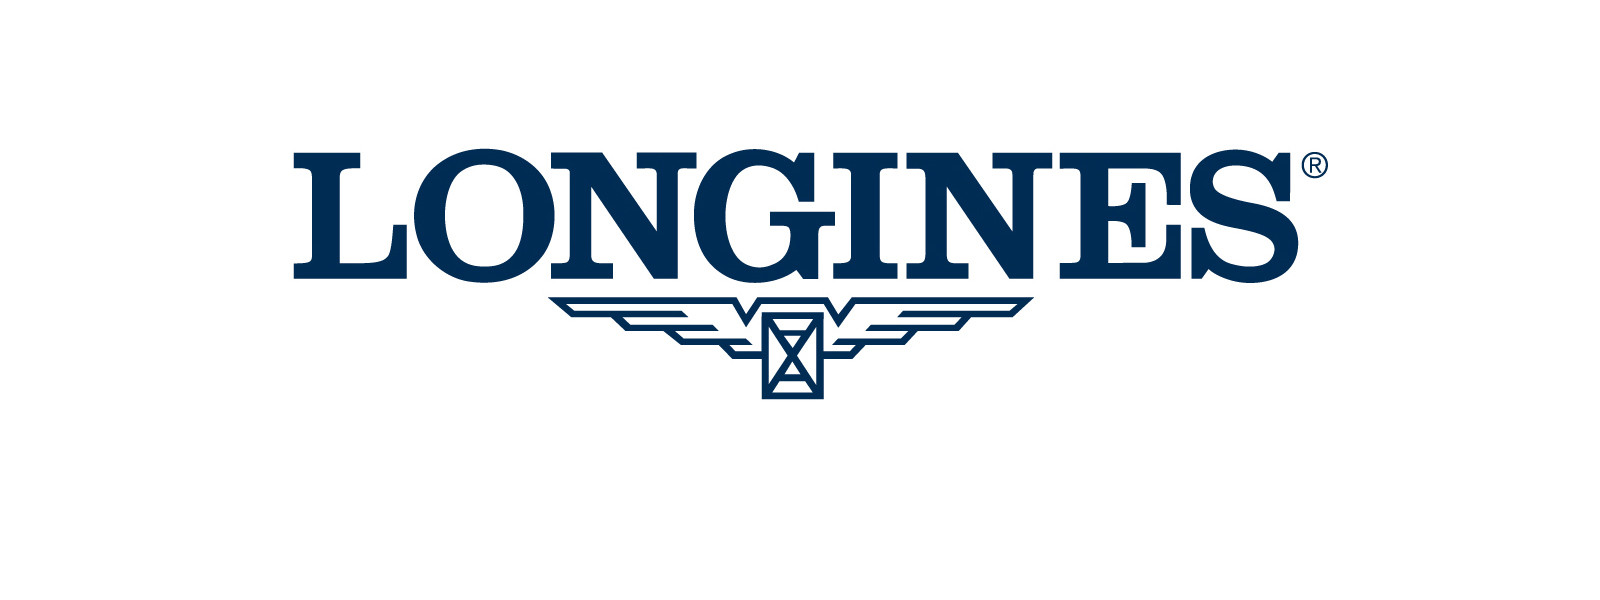 Logo_Longines_slider_New_C-_-15710.jpg